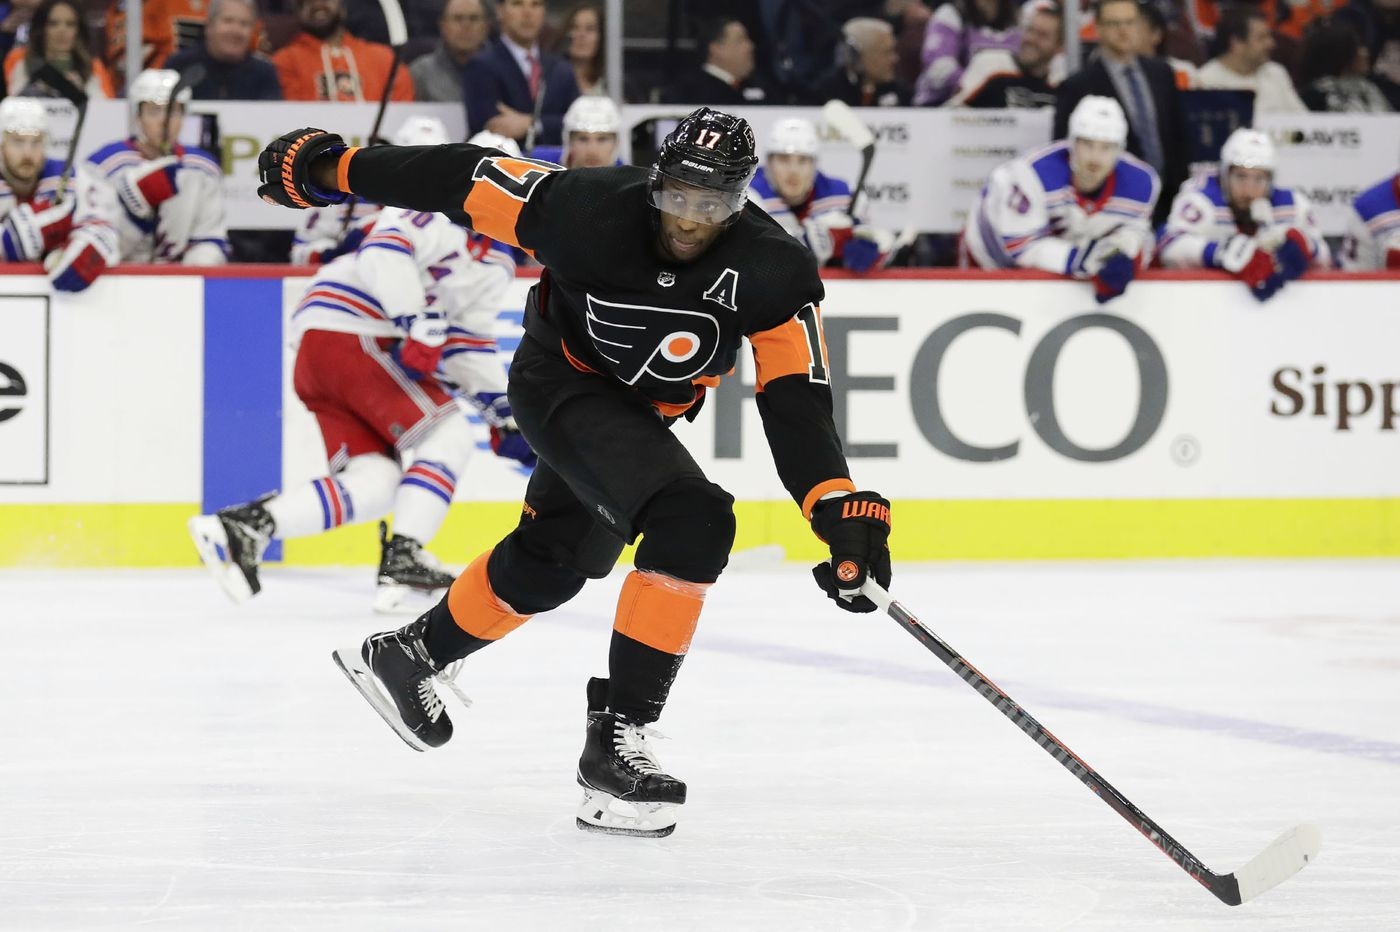 Will the Flyers trade Wayne Simmonds, or keep him for a chance to lure Joel Quenneville?